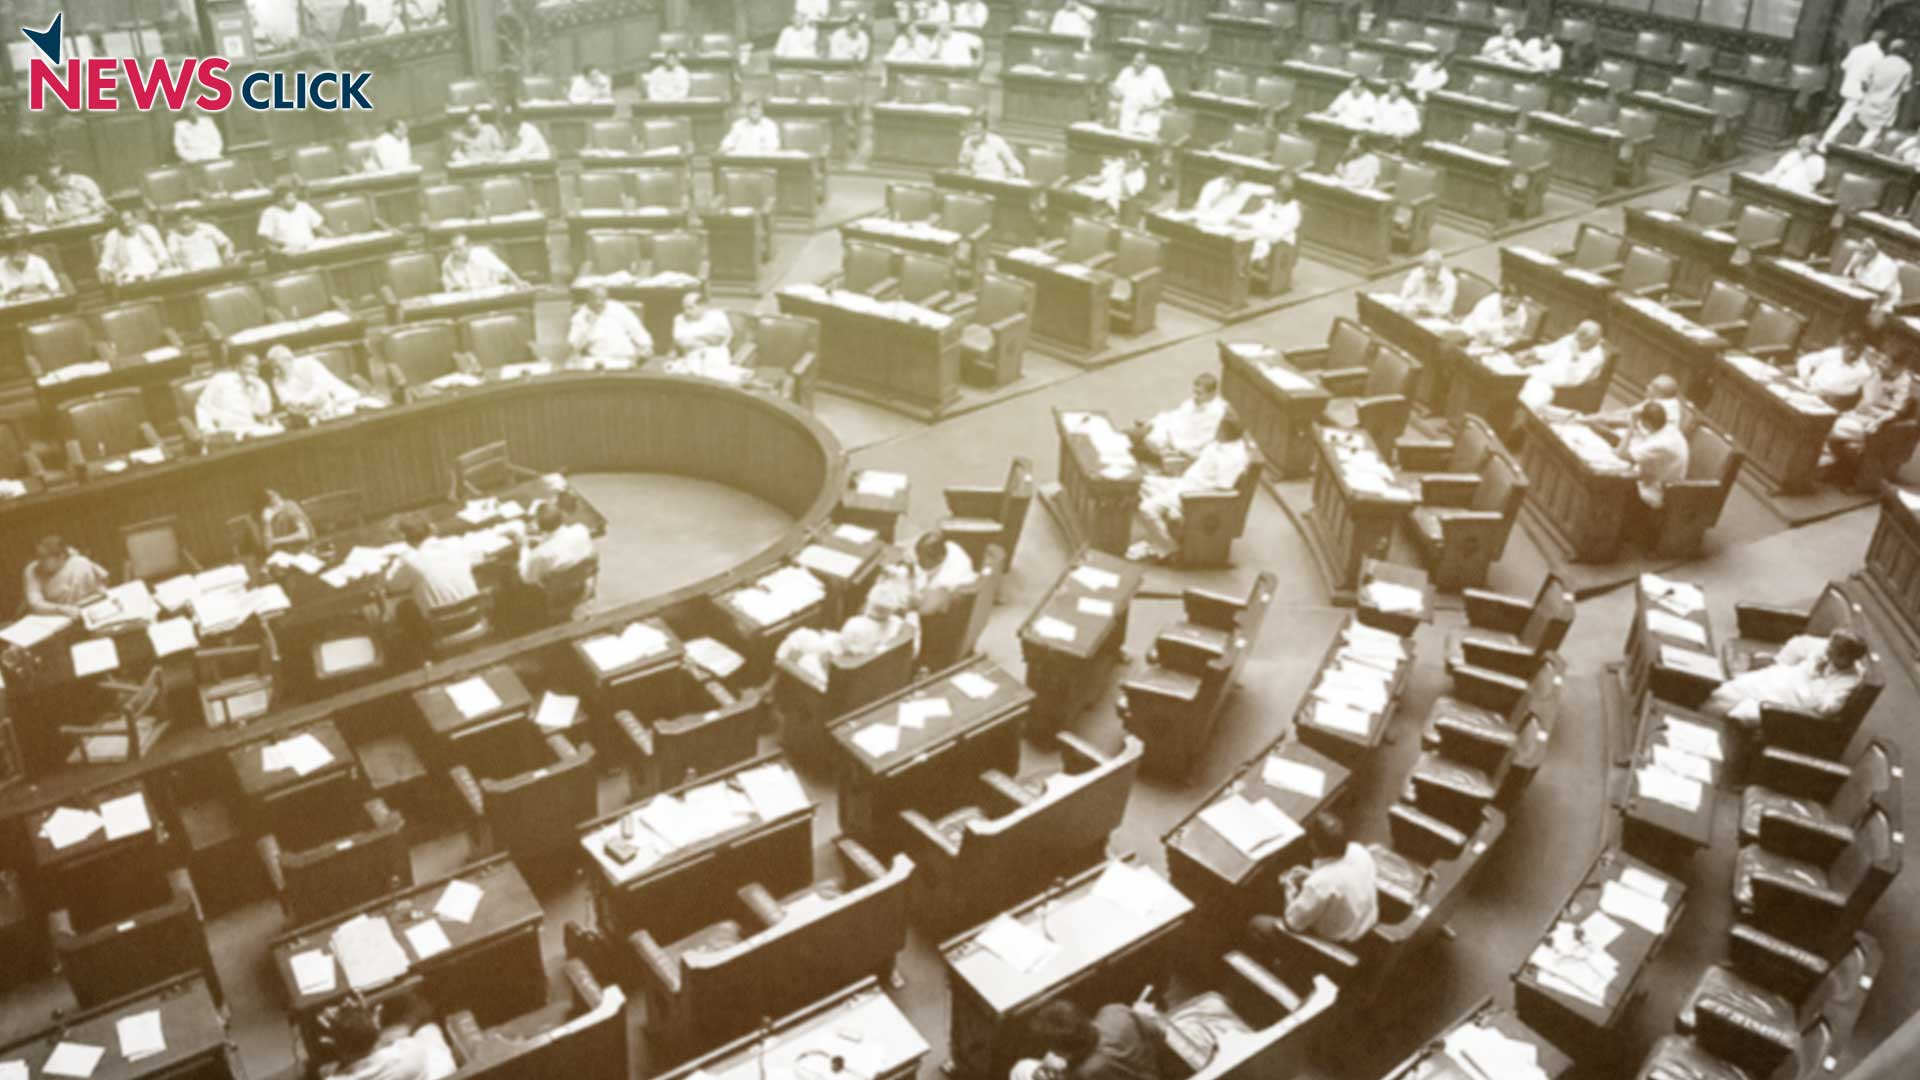 BJD candidates elected to Rajya Sabha uncontested